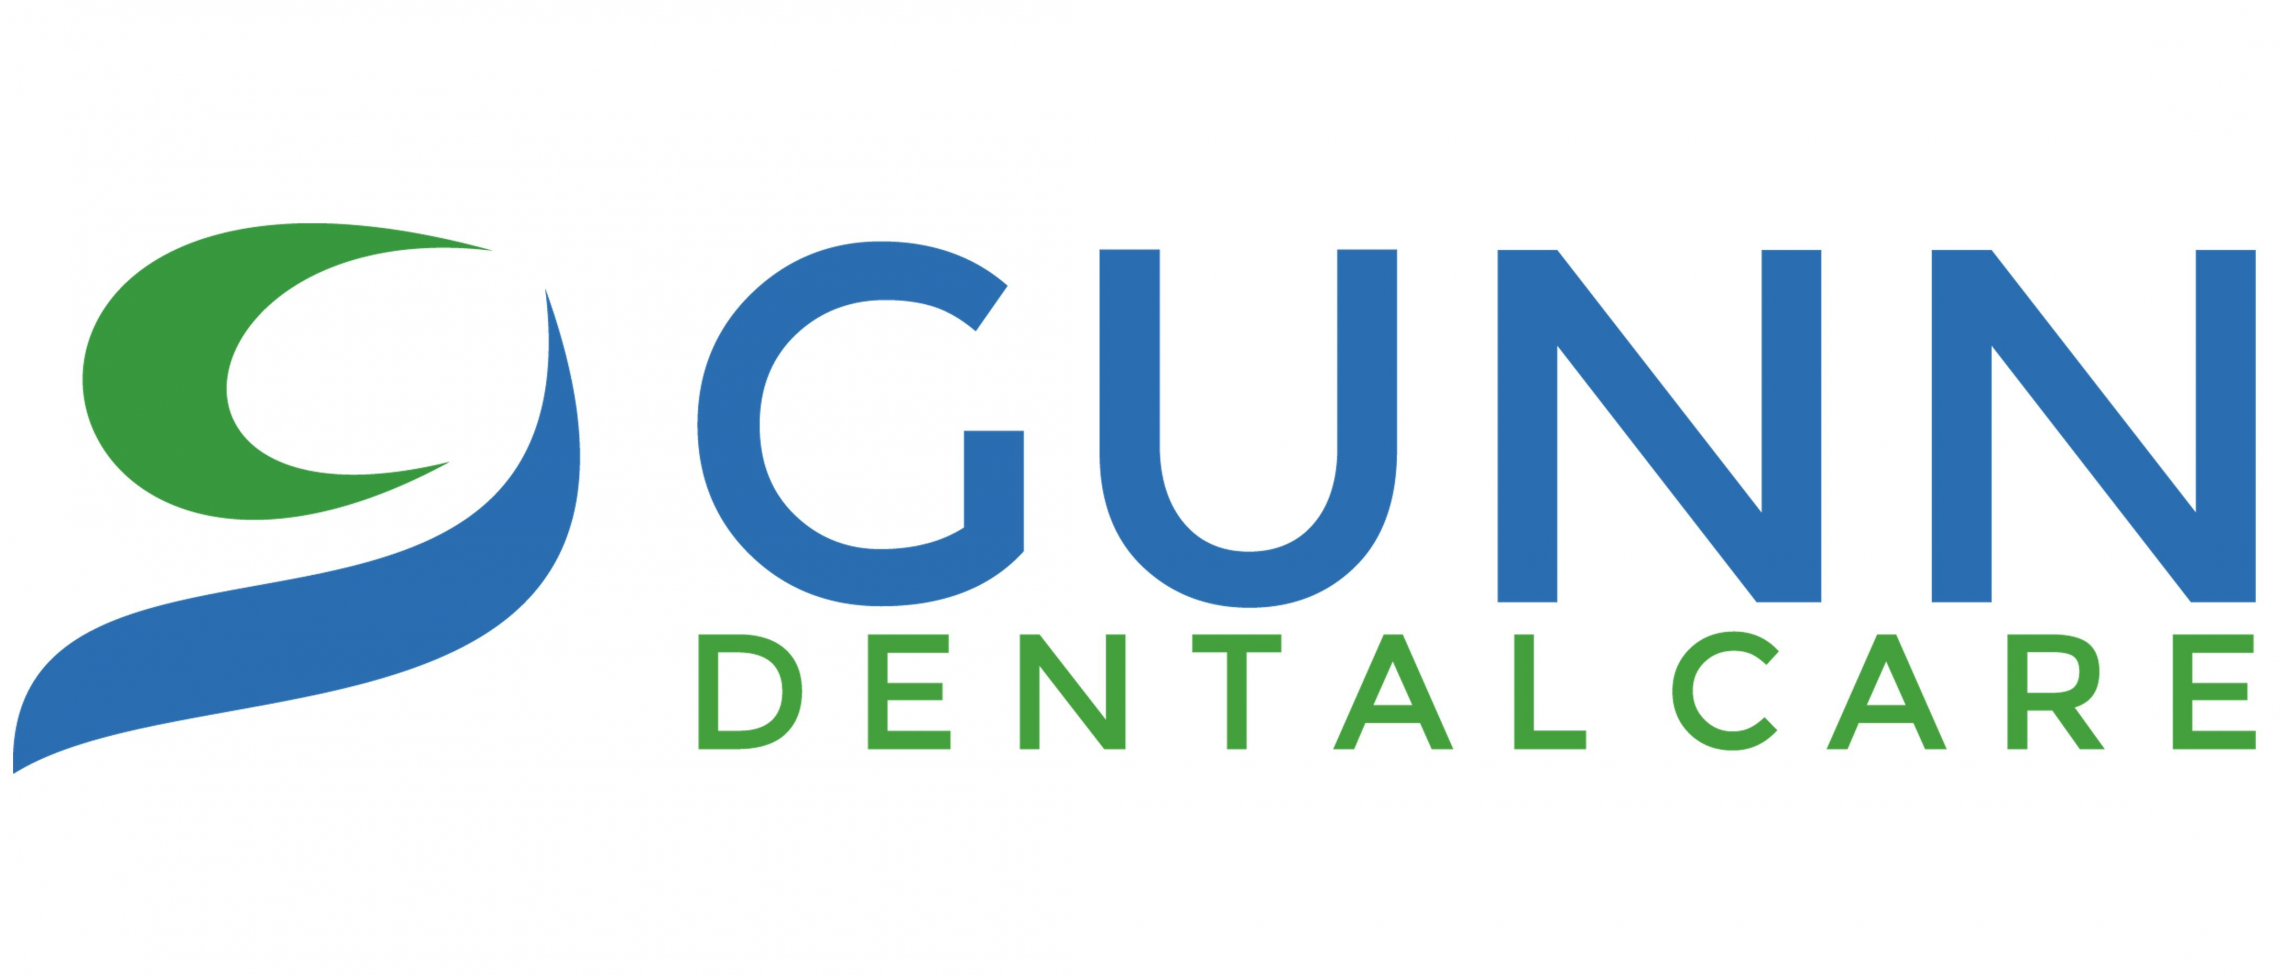 Gunn Dental Care - The MiSmile Network